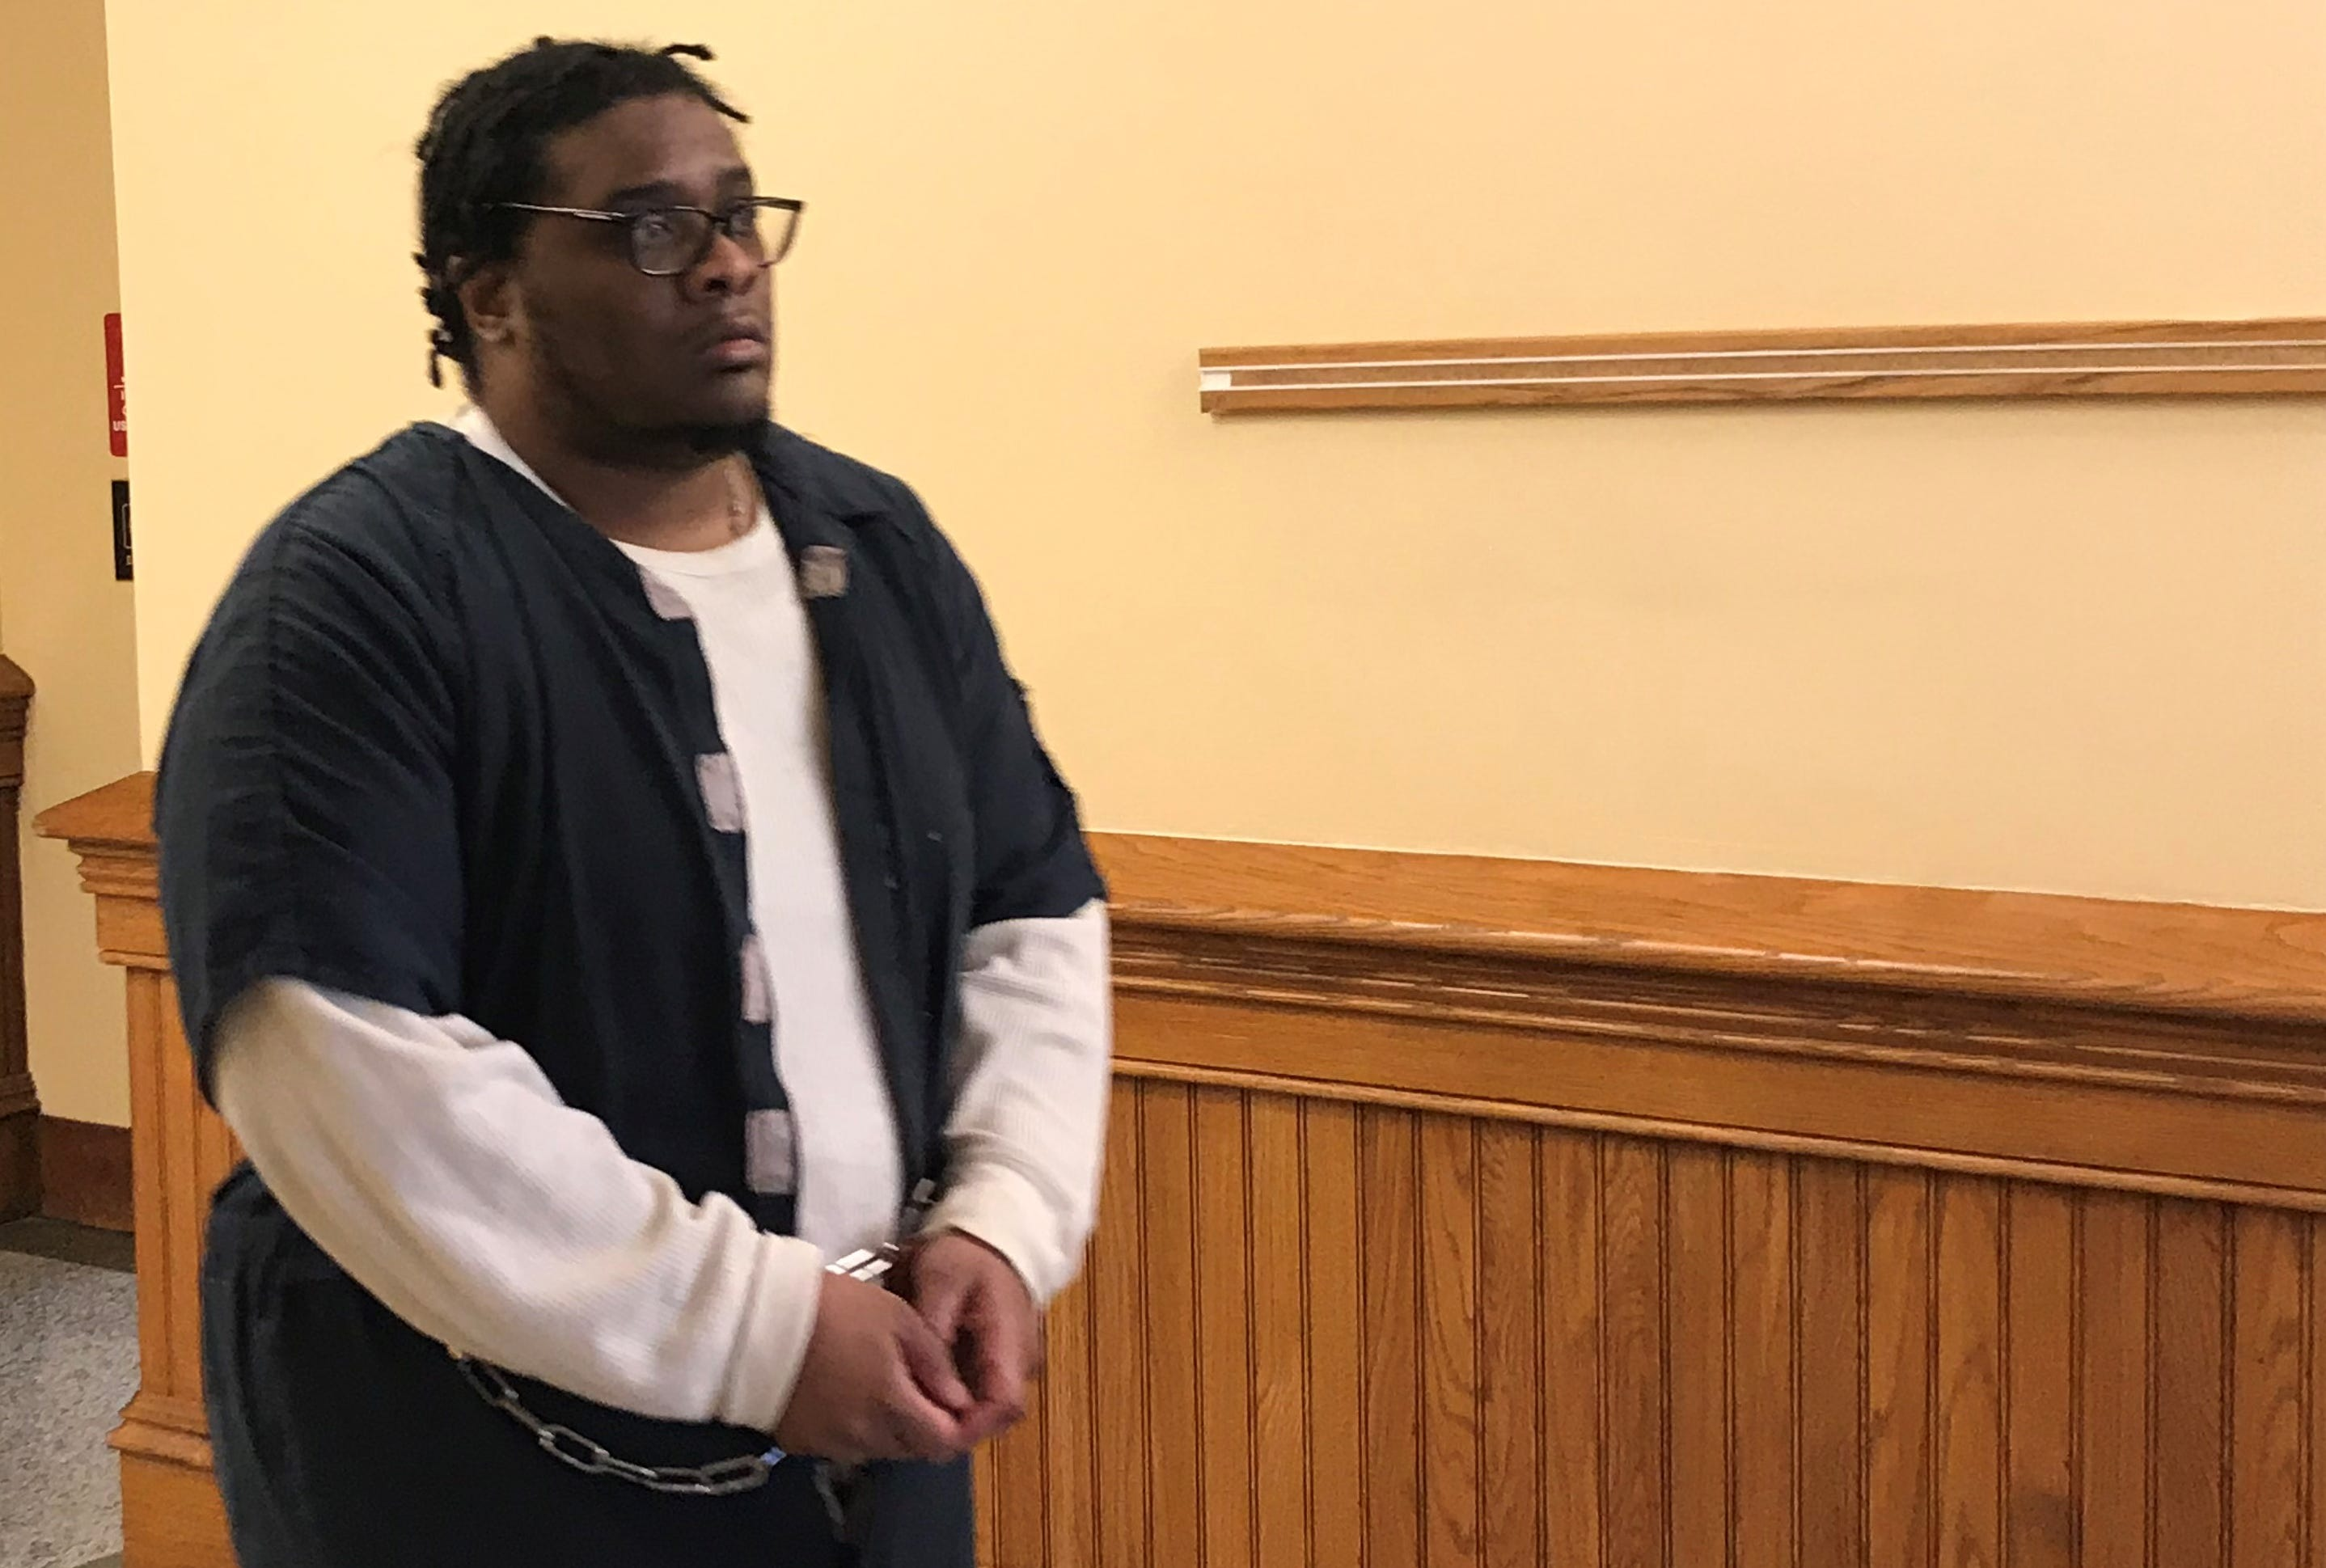 Aarron Vance walked out of the Tippecanoe County Courthouse Friday afternoon to begin serving a 30-year prison sentence for a burglary, during which John Byler was killed.